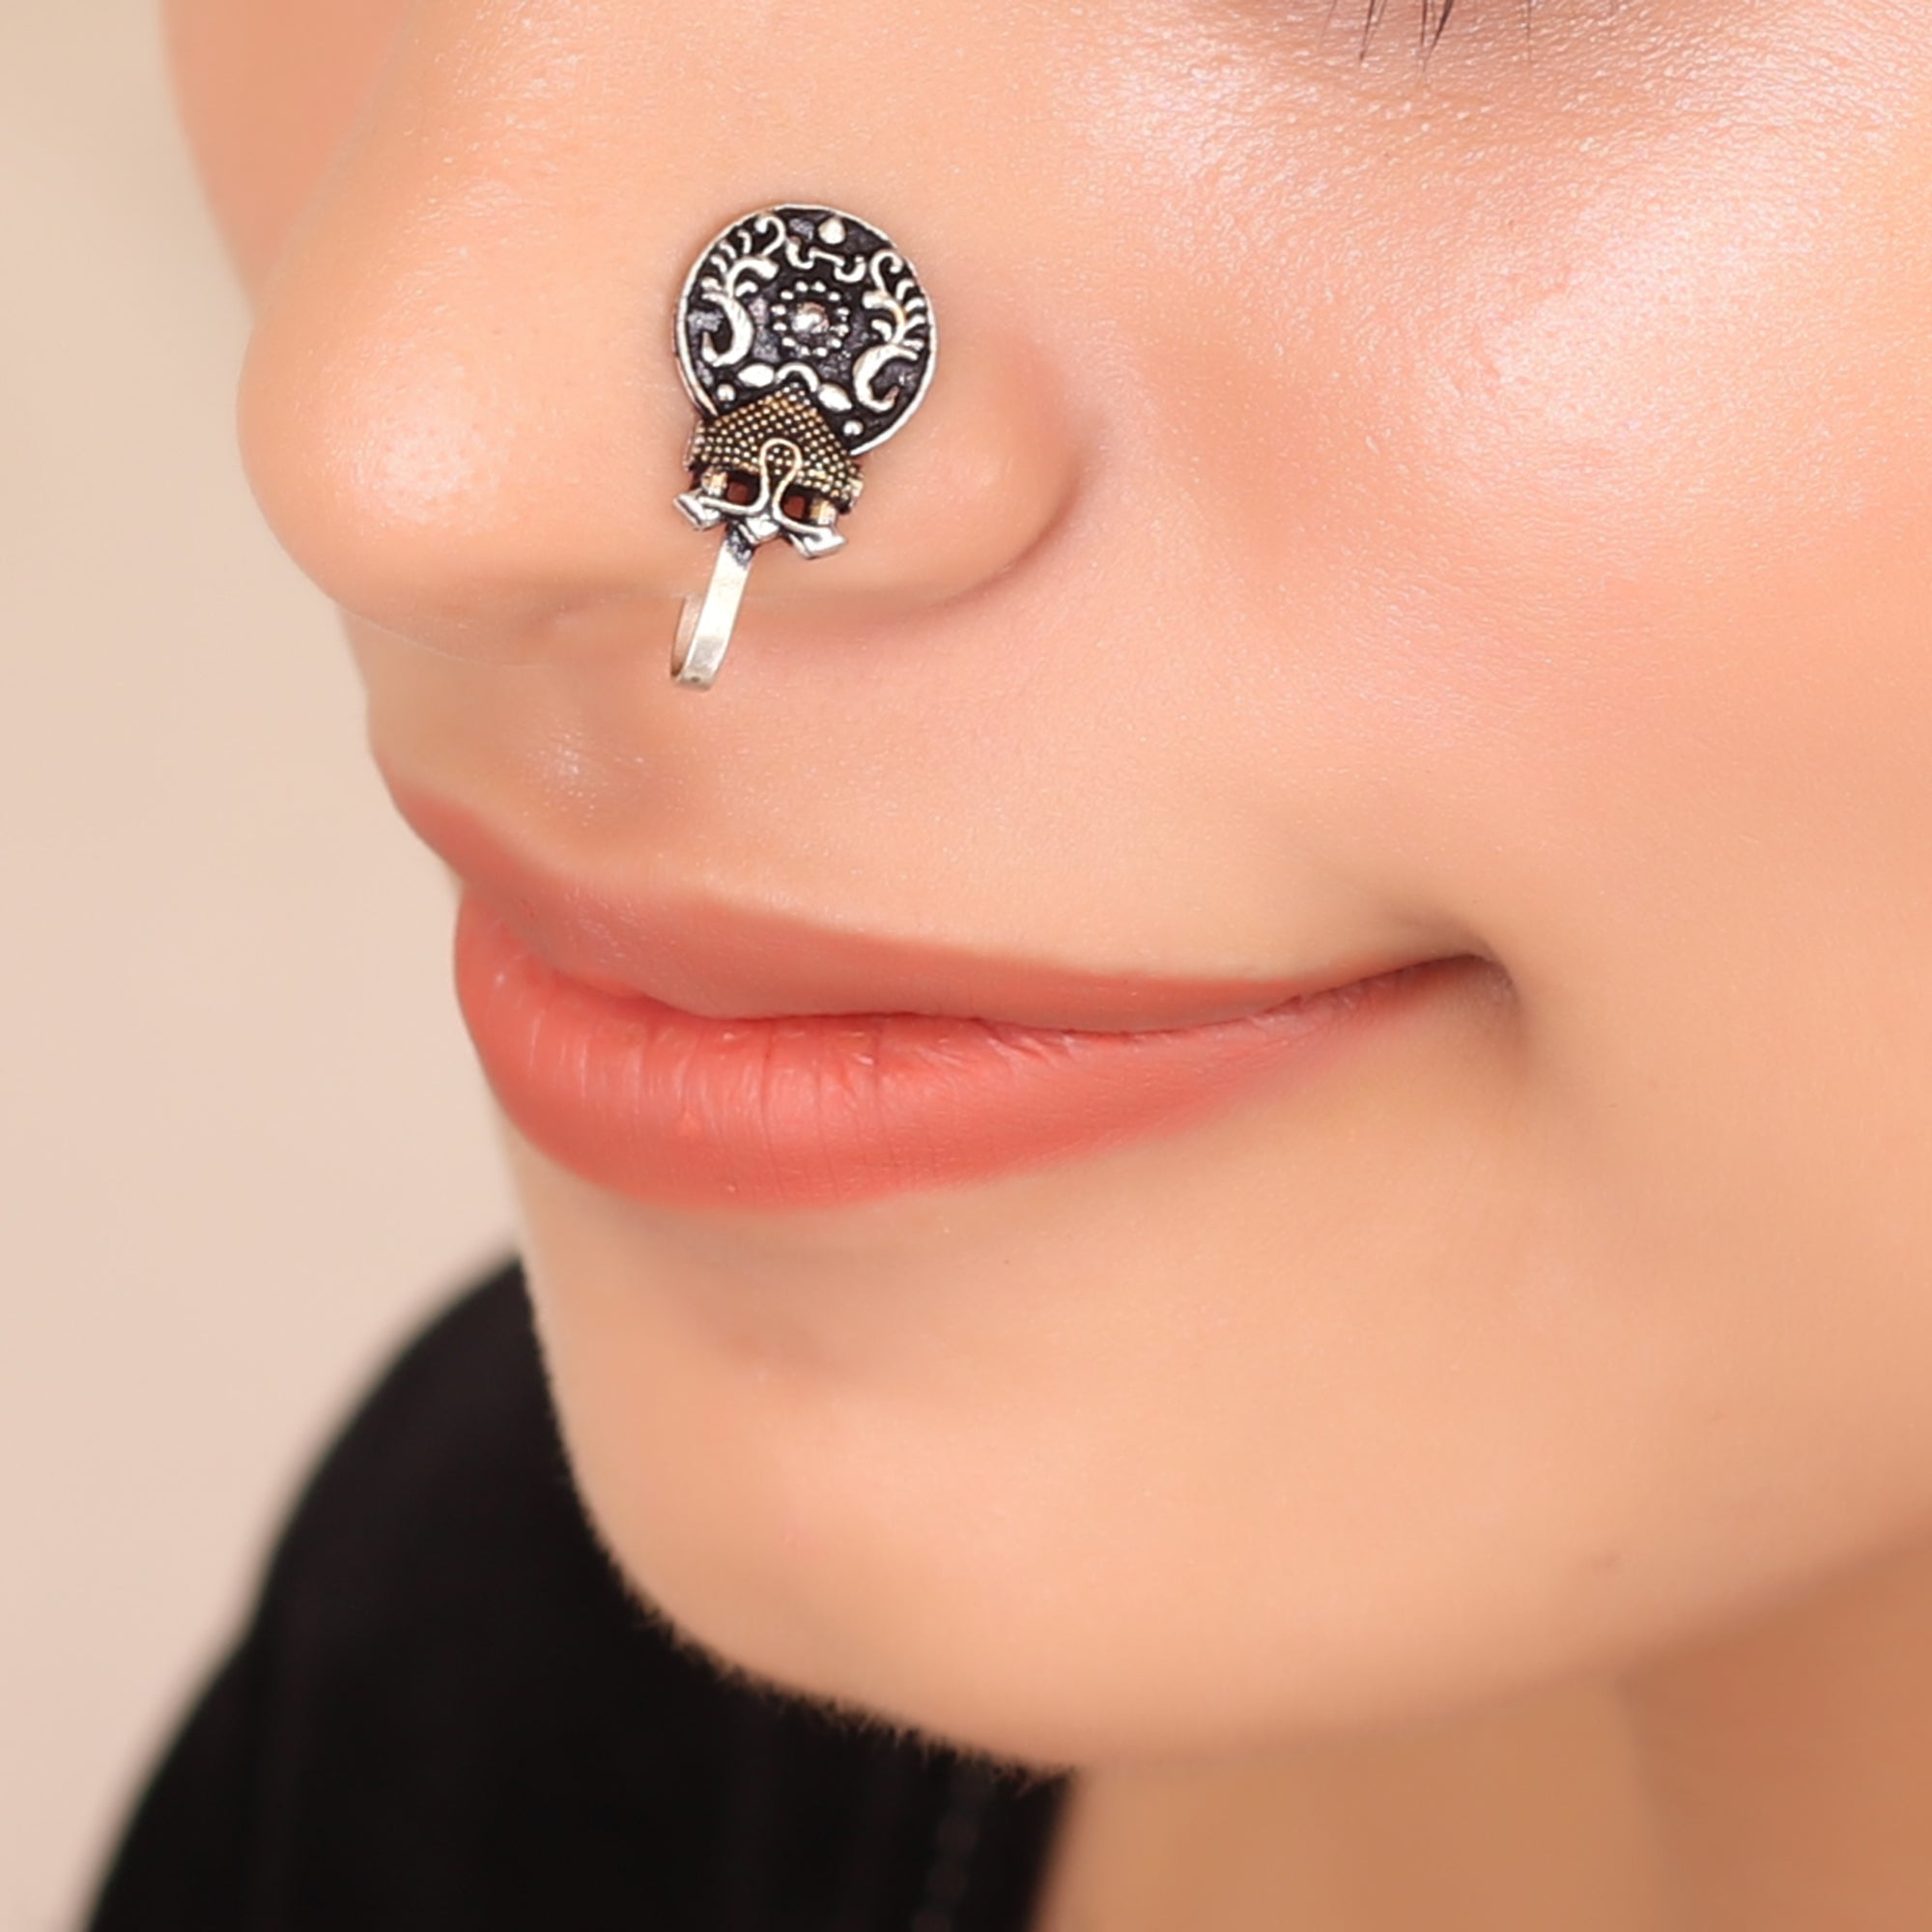 The Medallion Nose Pin in Dual Tone